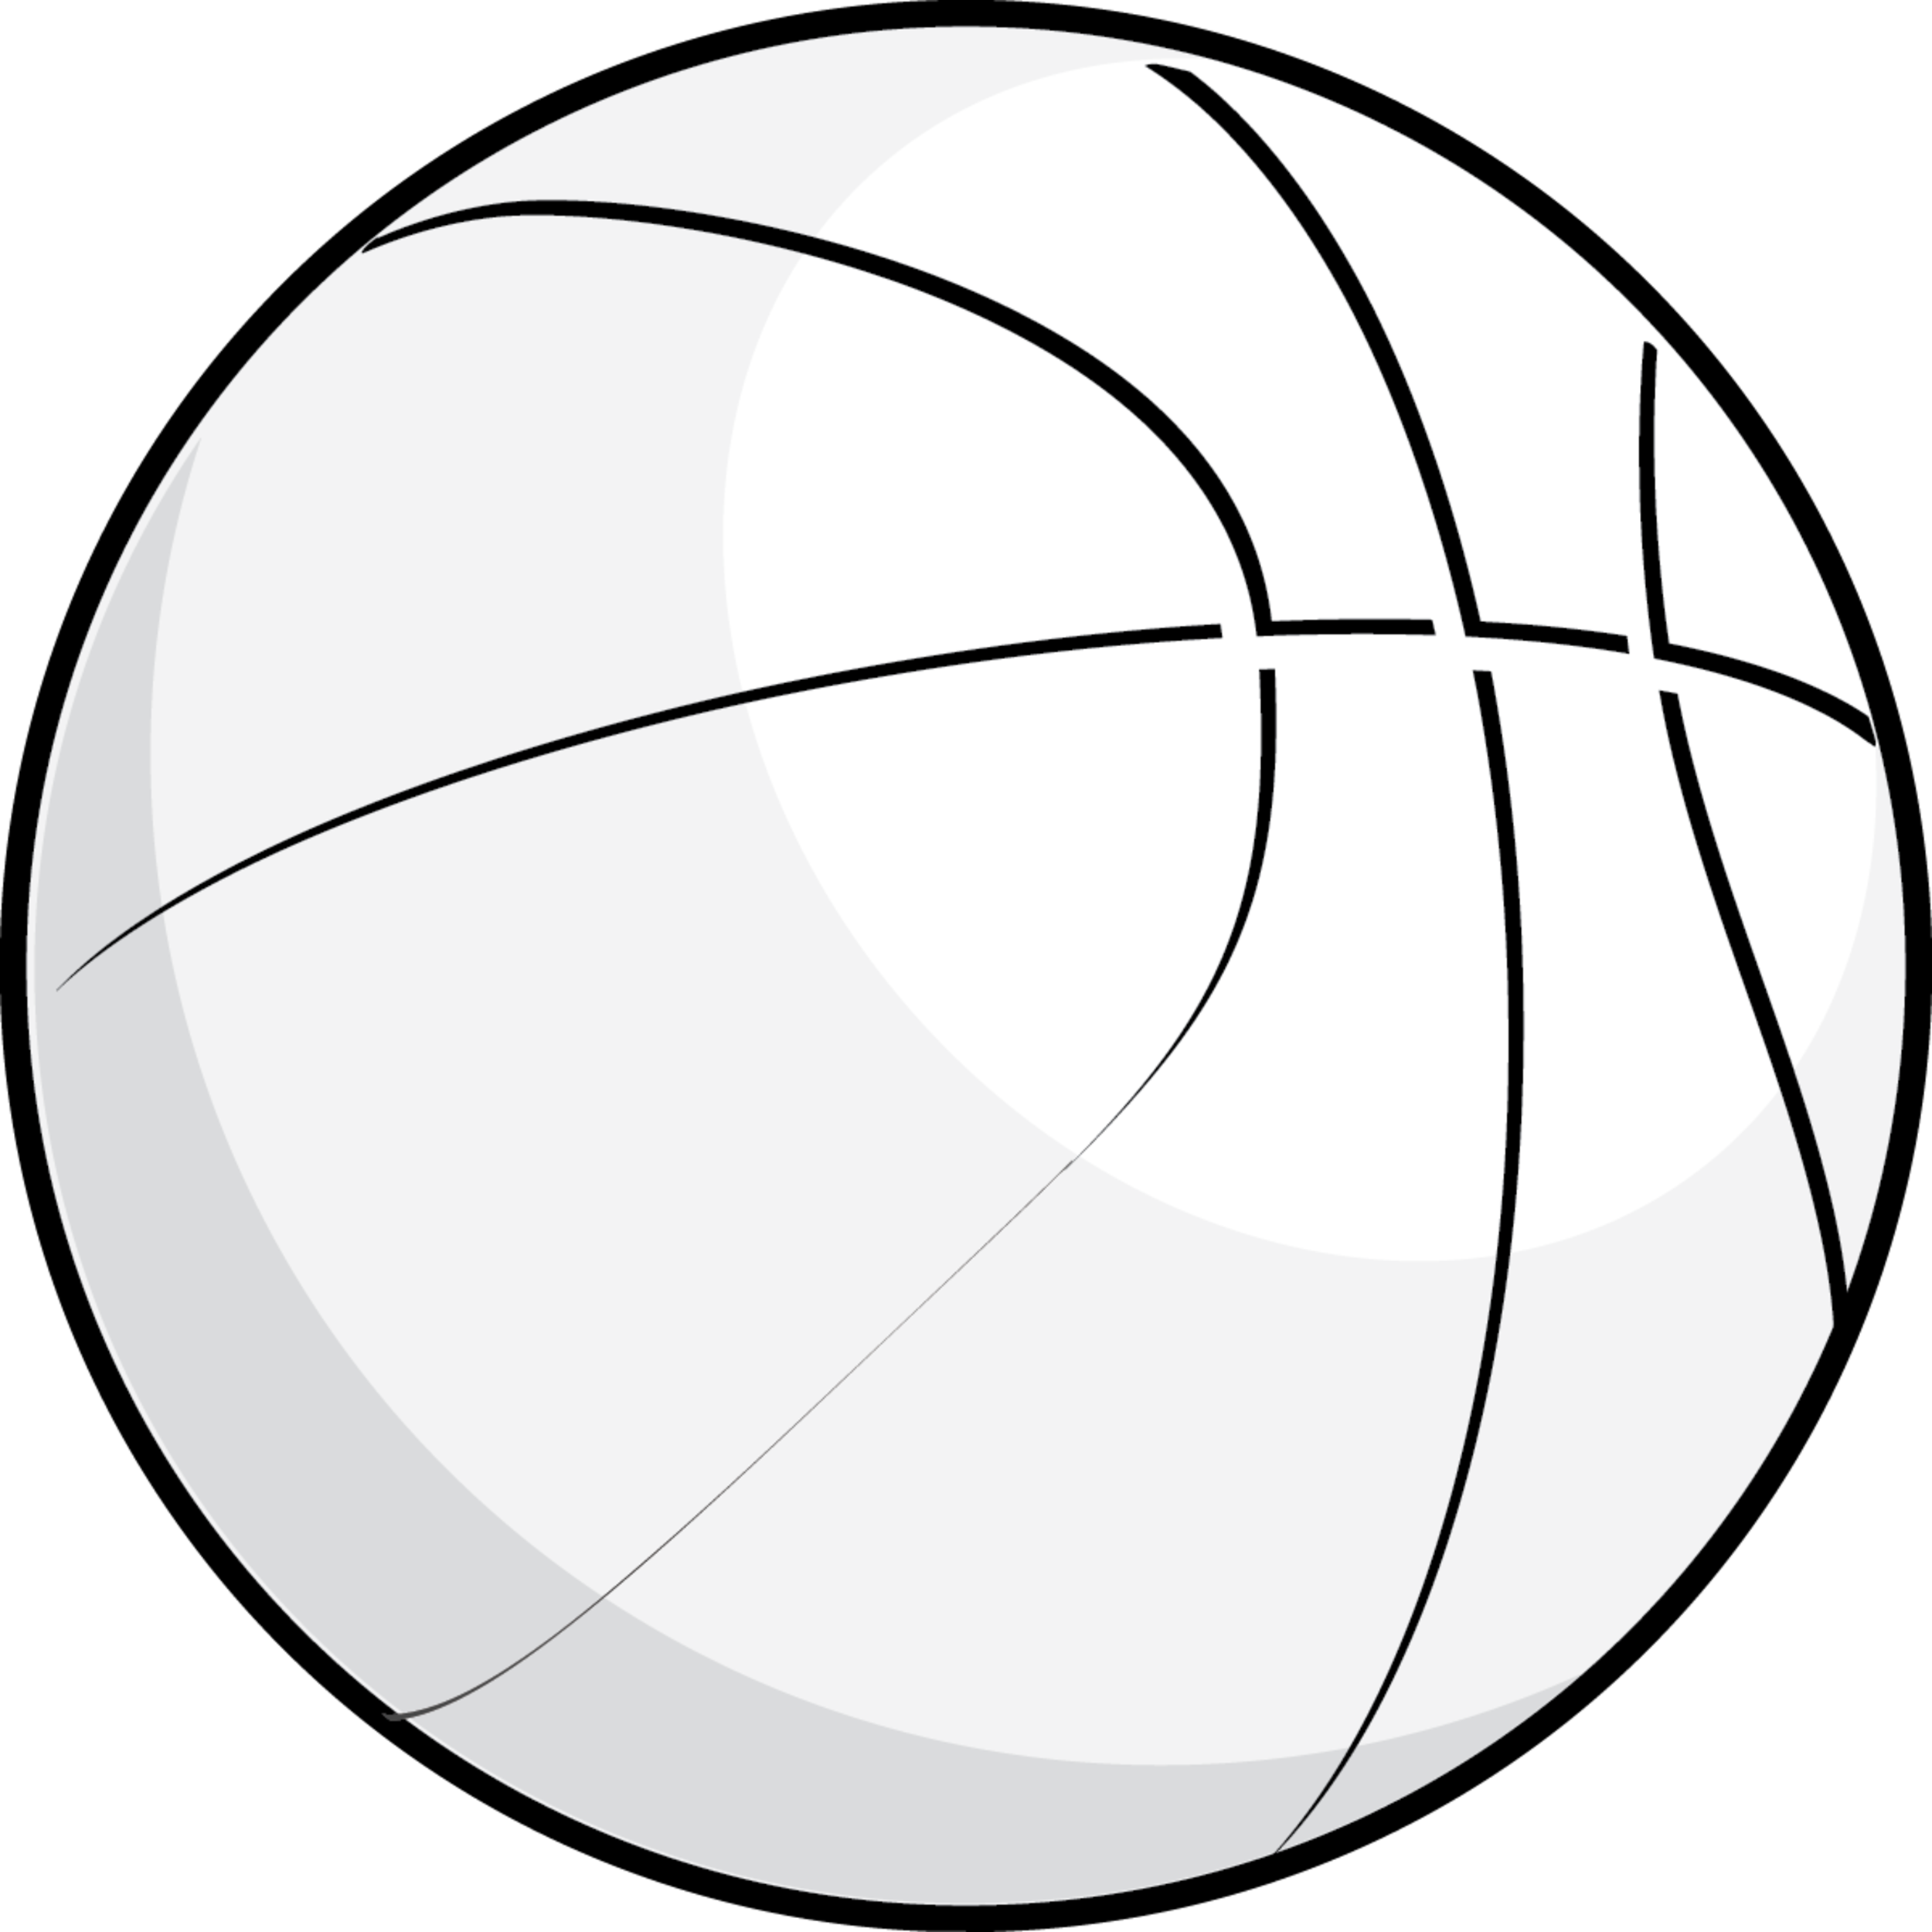 Basketball abstract net clipart black and white clip art black and white Black And White Basketball Clipart | Free download best Black And ... clip art black and white